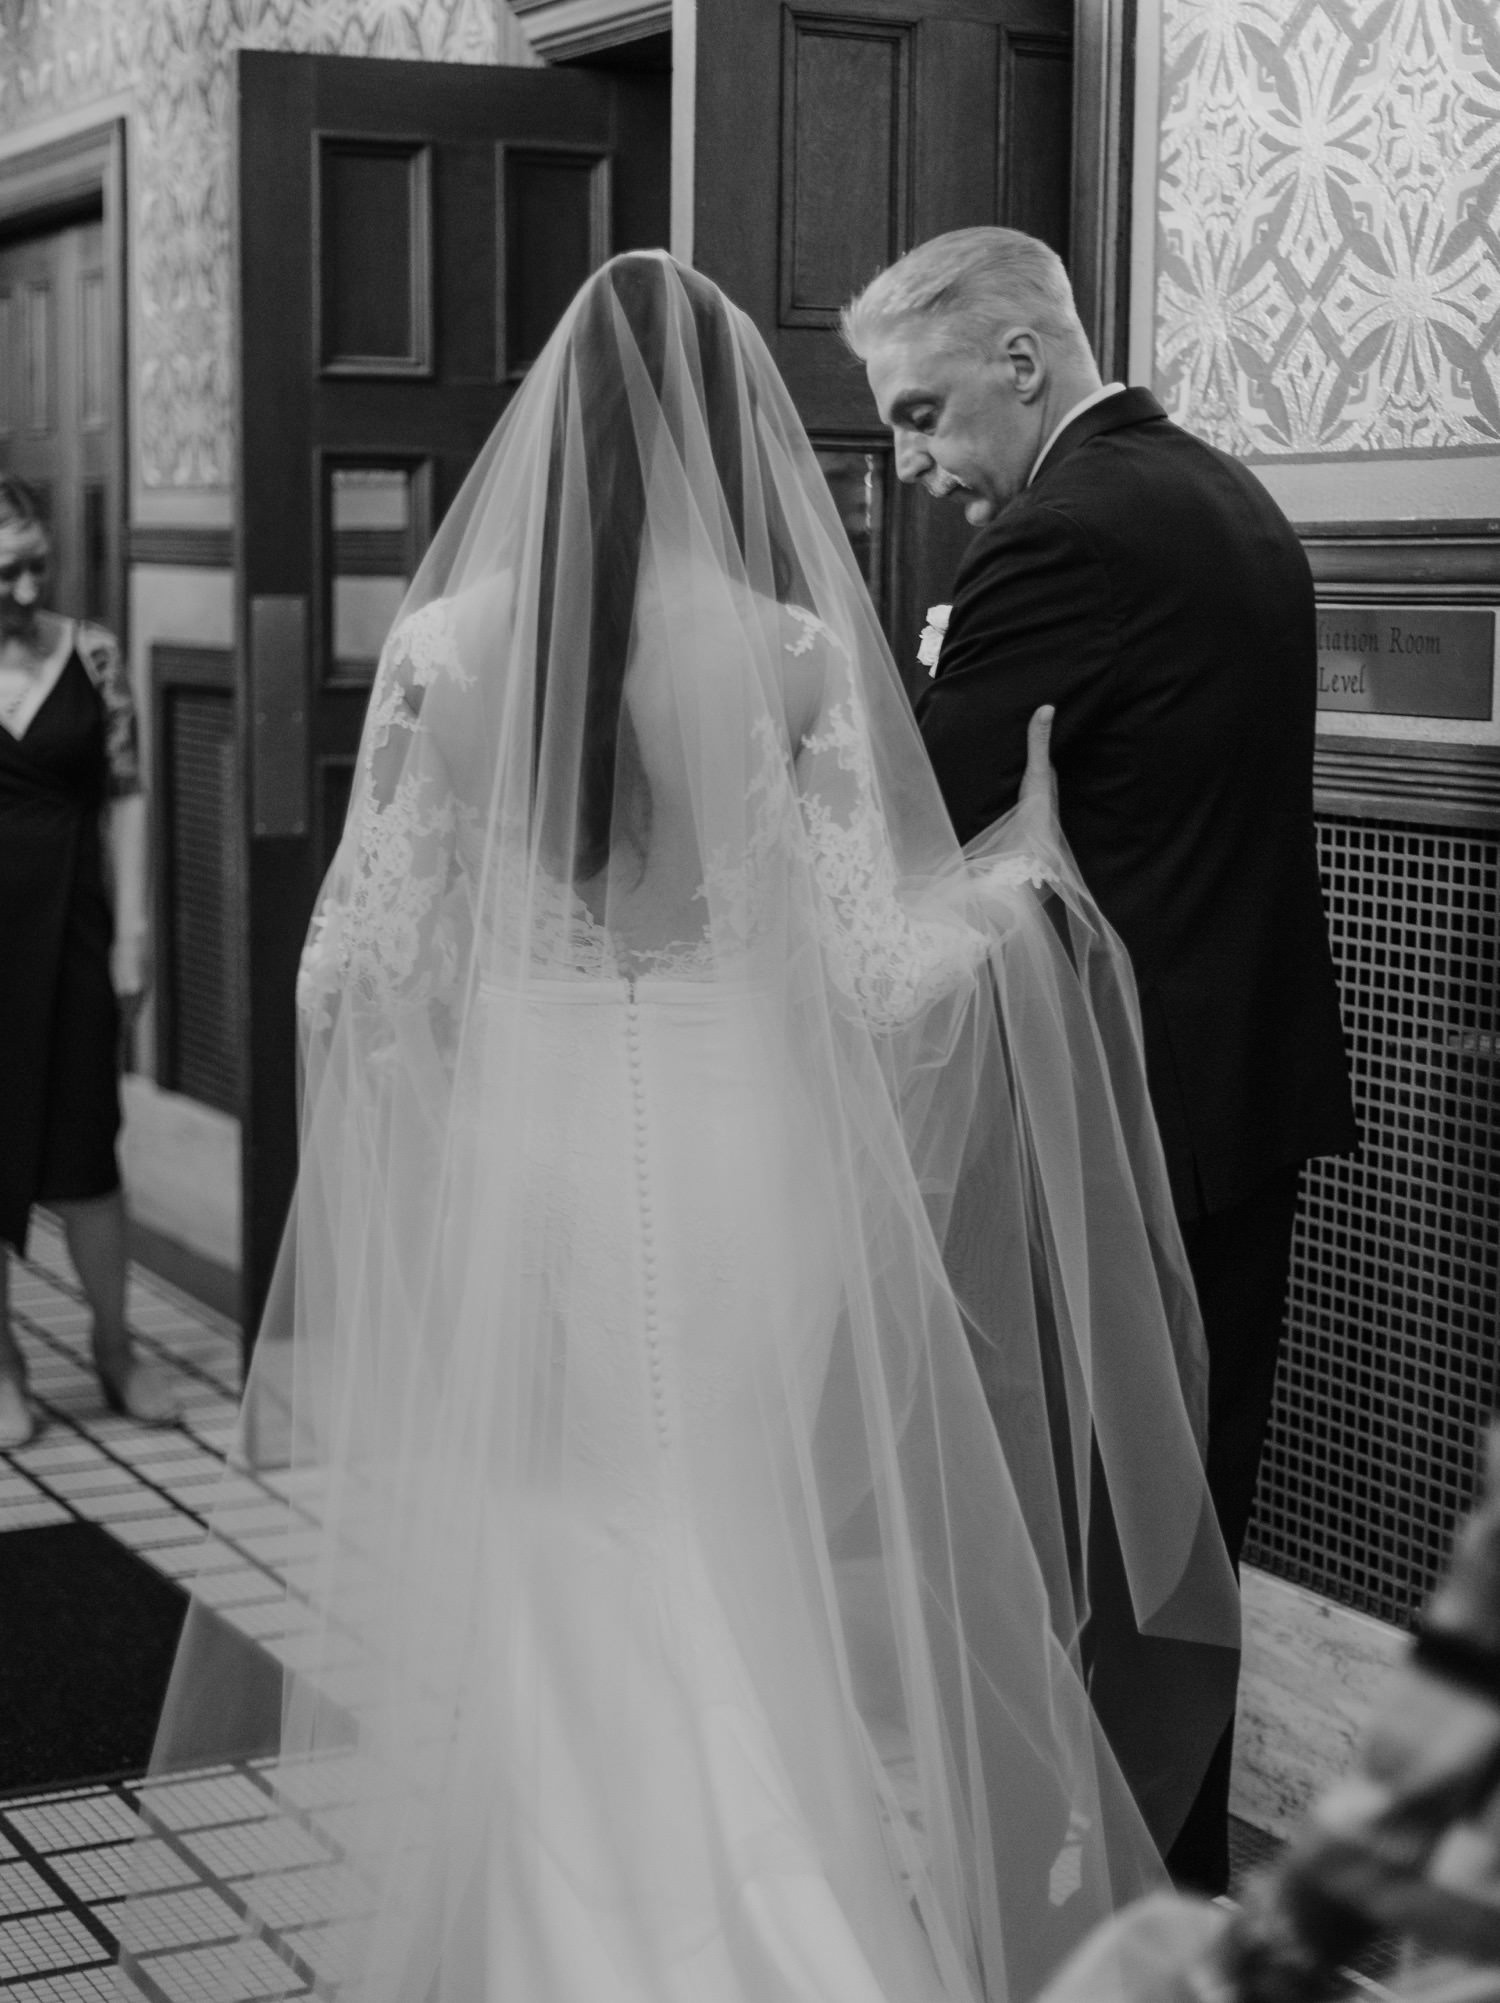 The bride being led down the isle by her father in St. Clement Church